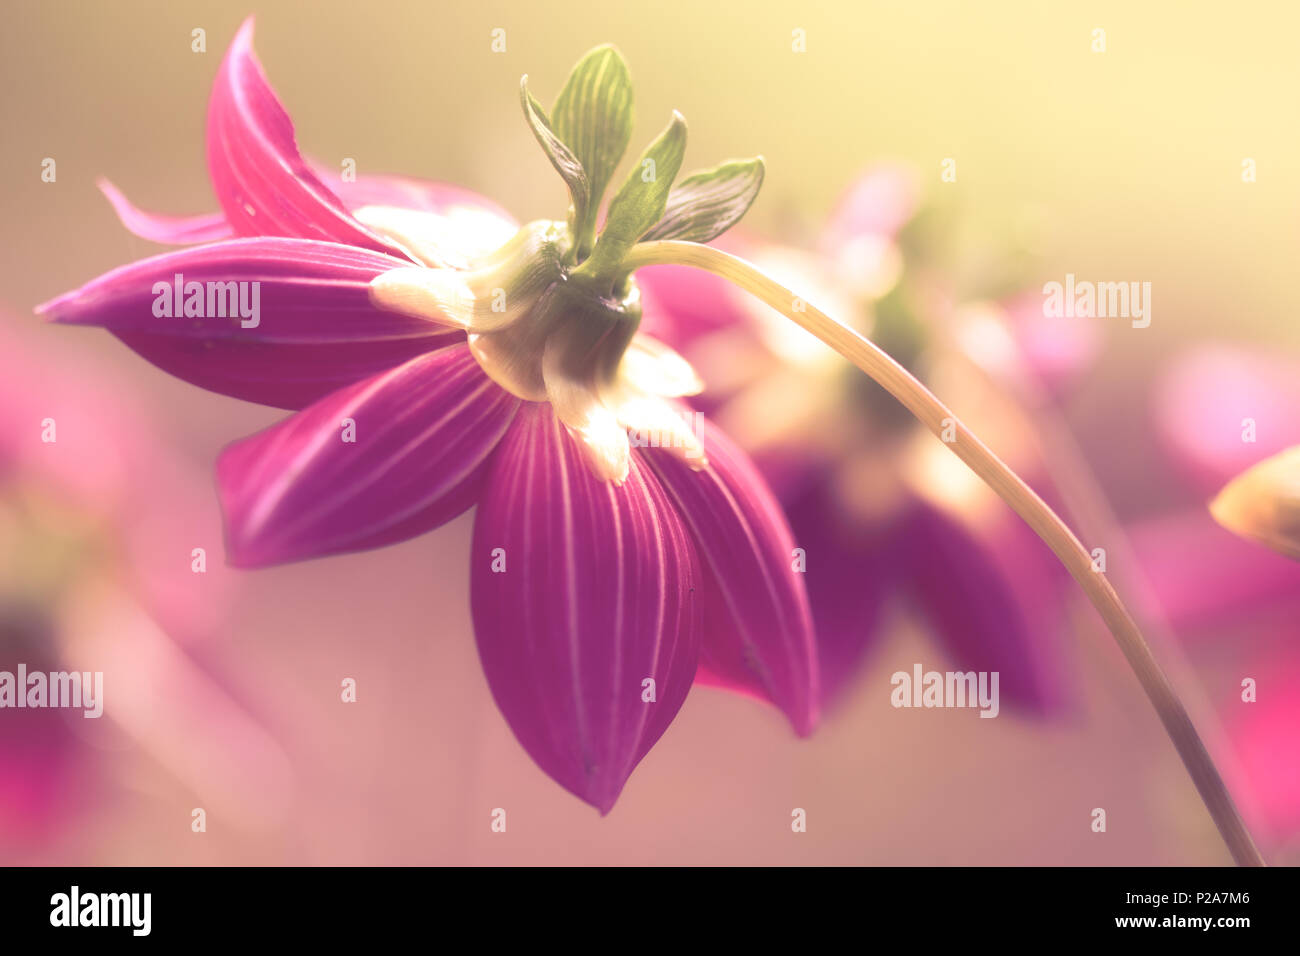 pink dahlias lined up on a blurred background, pastel colors - Stock Image